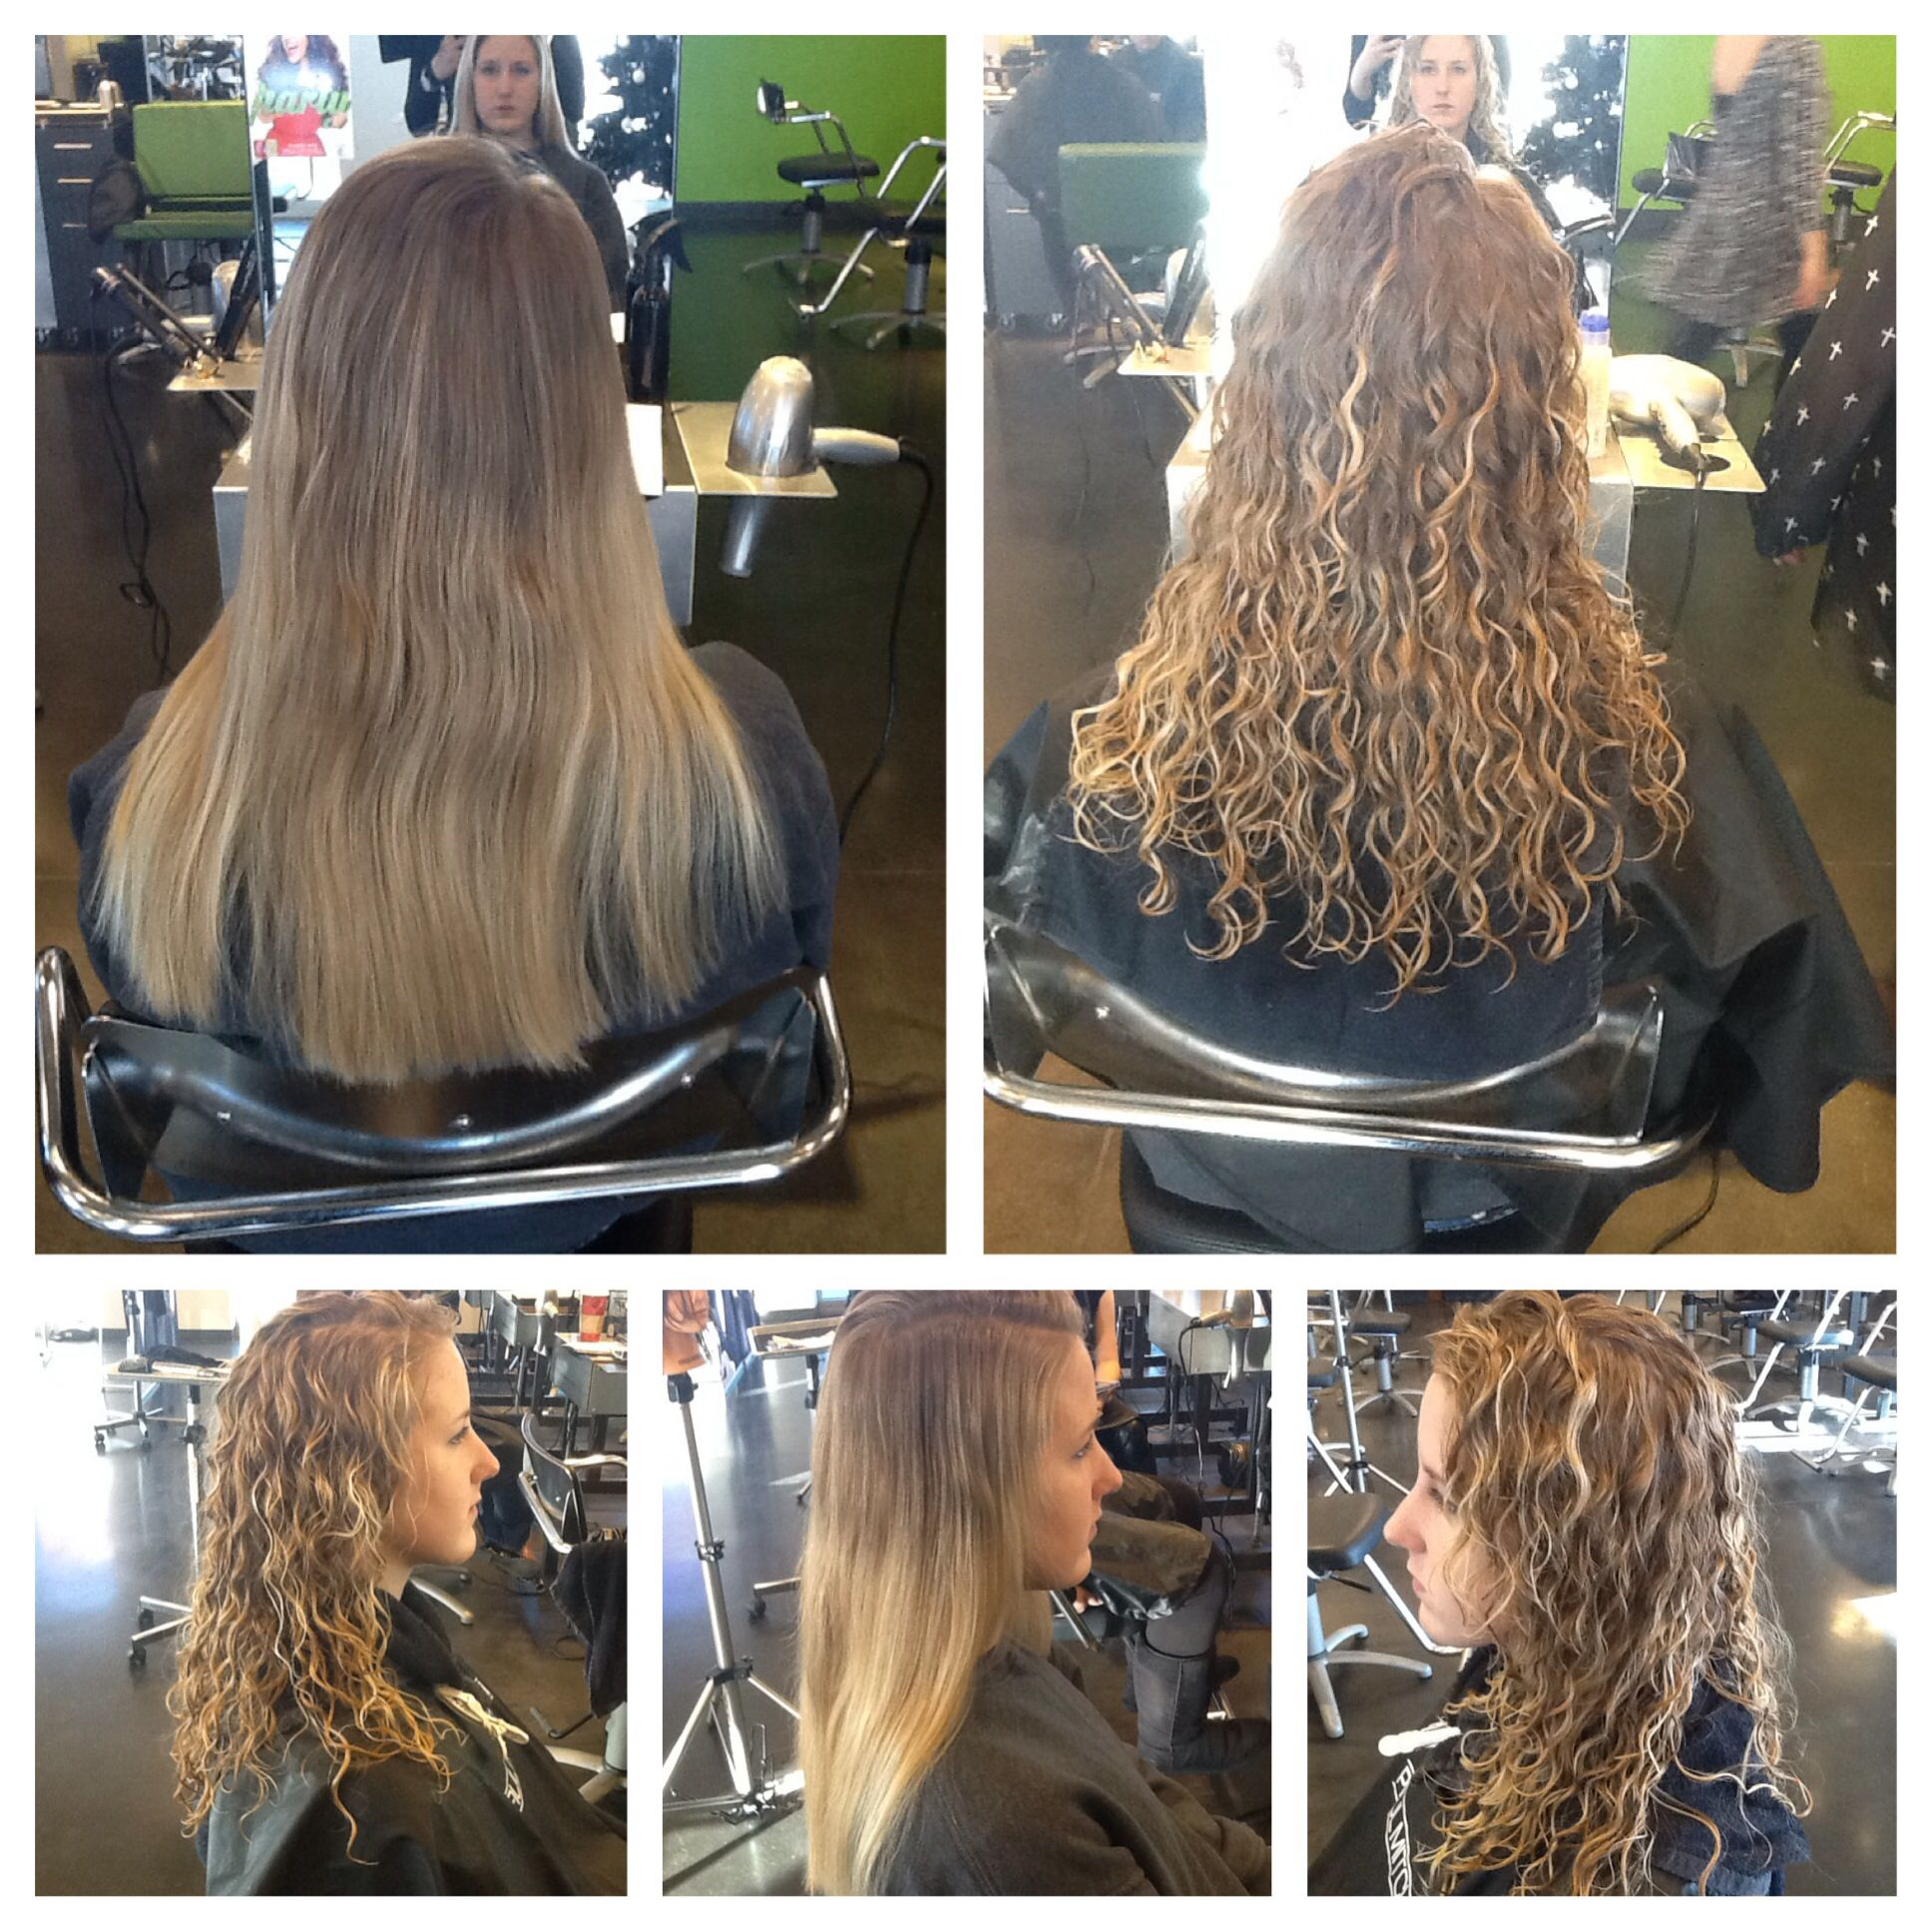 Straight perm for curly hair - Wavy Spiral Perm Too Bad My Hair Can T Naturally Look Like